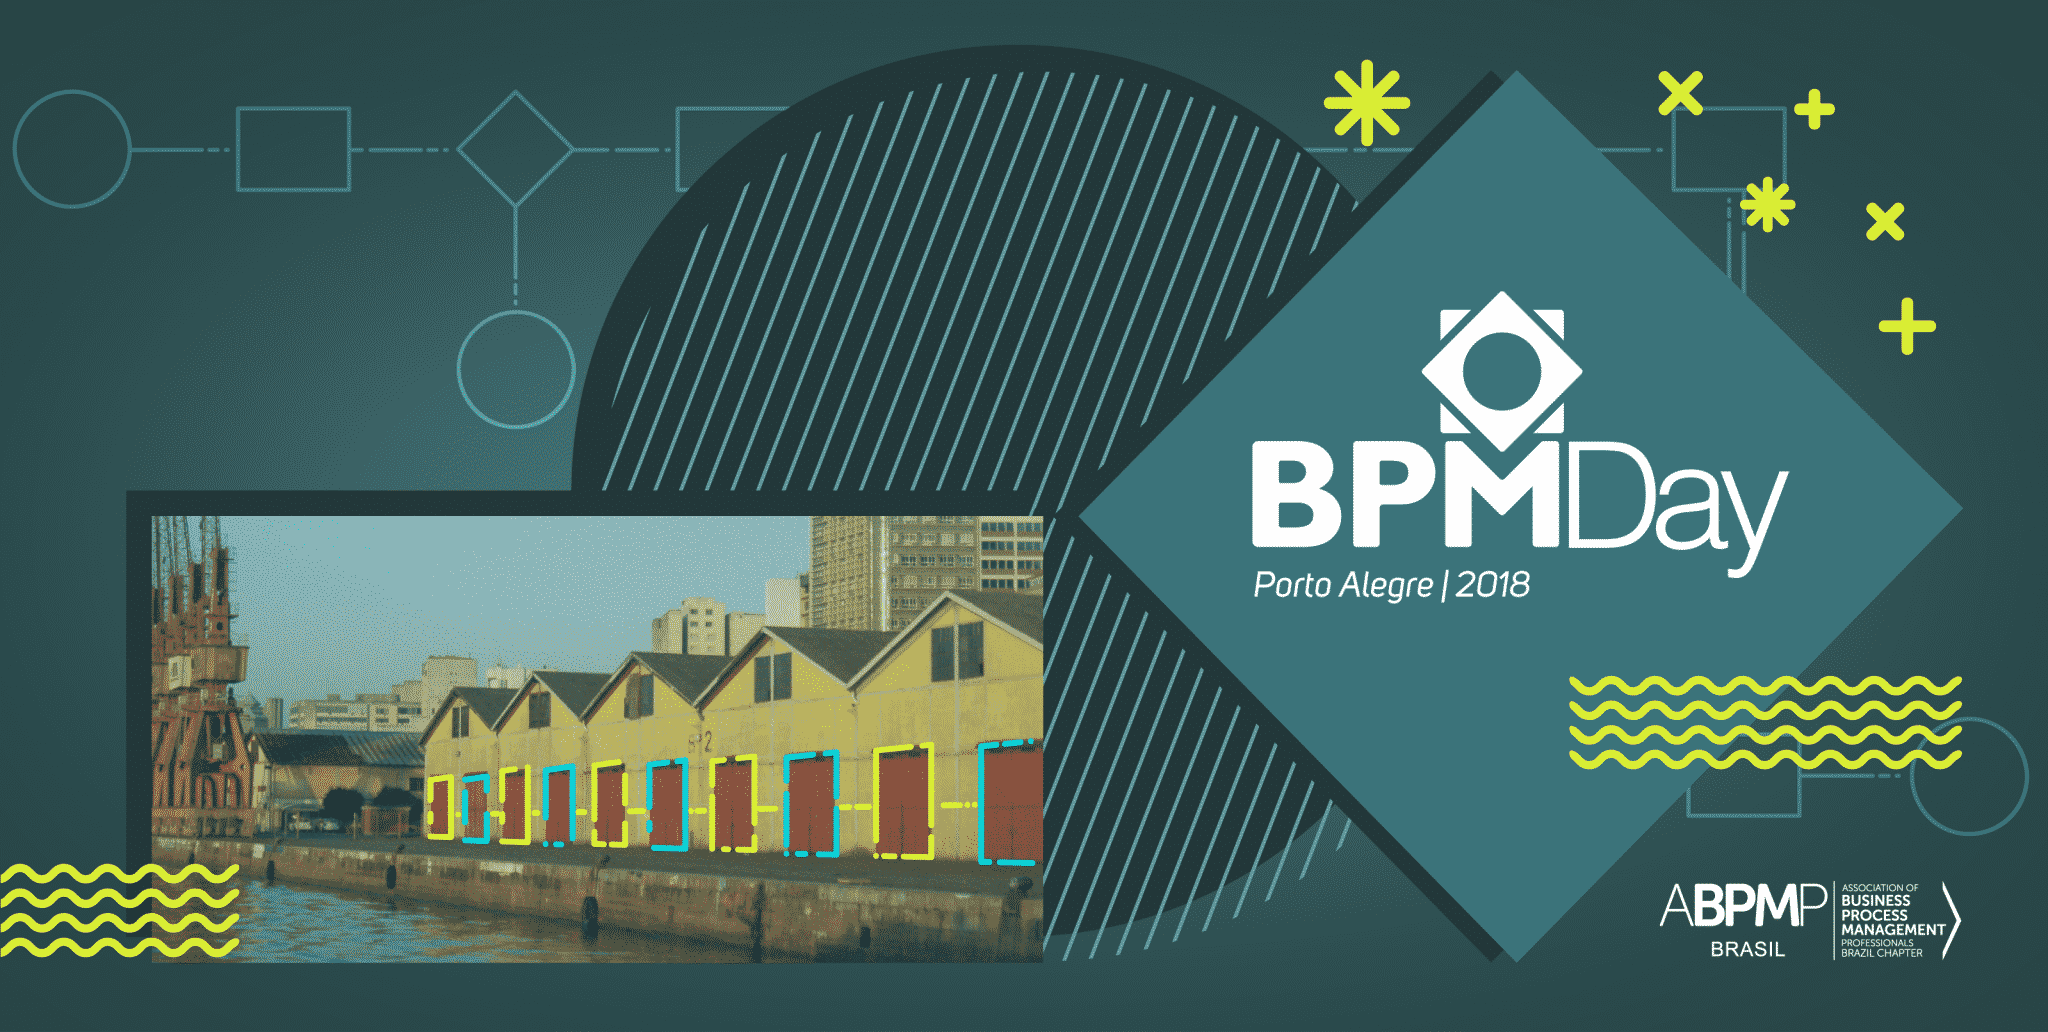 Página do BPM Day Porto Alegre 2018